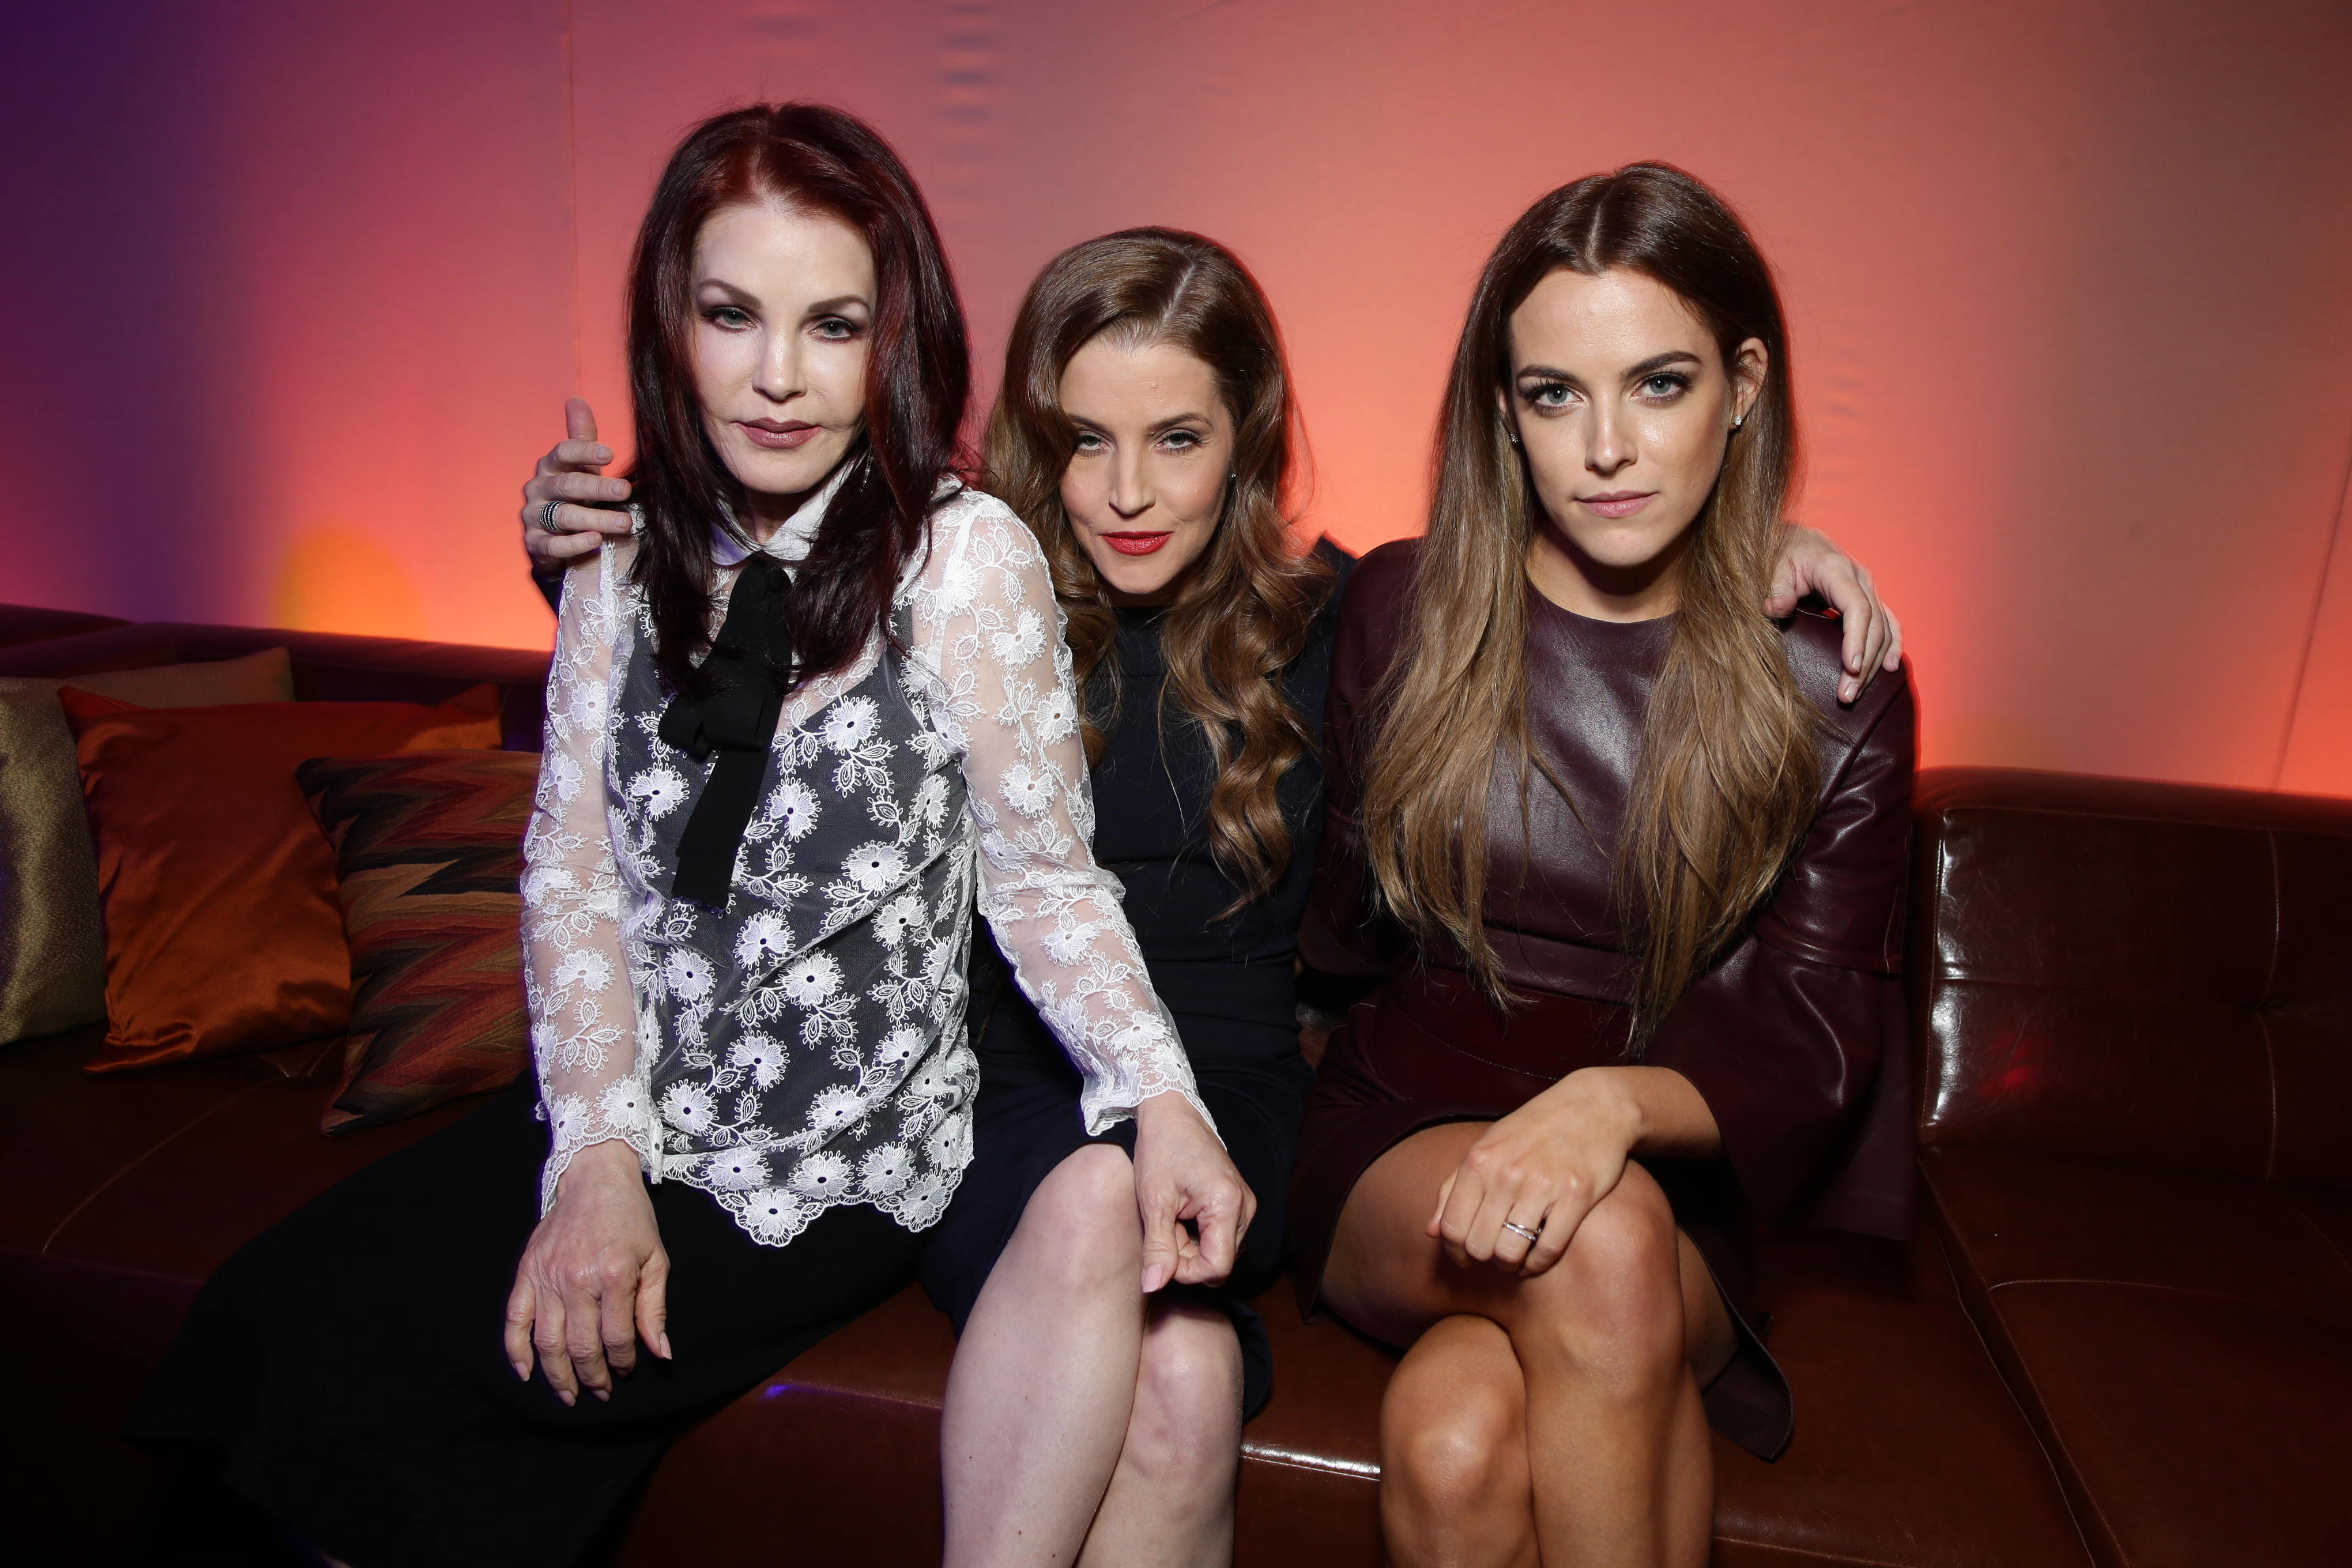 Priscilla Presley, Lisa Marie Presley and Riley Keough seen at the Warner Bros. premiere of  Mad Max: Fury Road  on May 7, 2015, in Los Angeles.